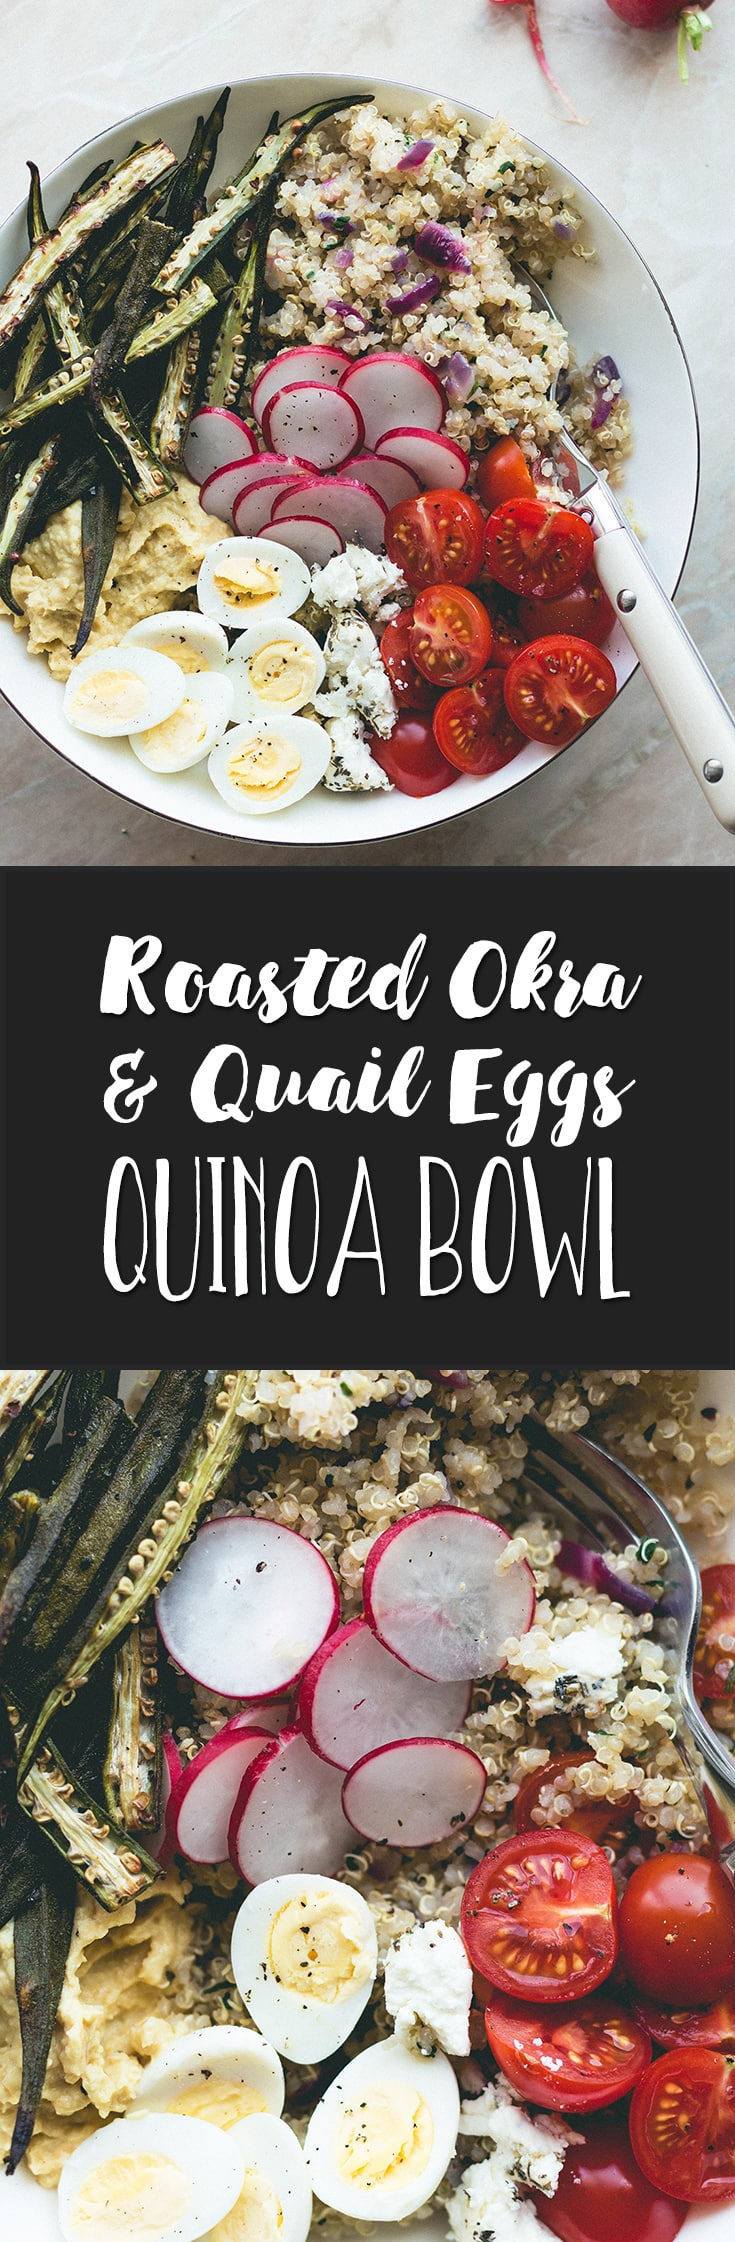 Roasted Okra, Quail Eggs, and Herbed Quinoa Bowl (vegetarian) - because bowl food is the best! Easy to make and really good for lunch, dinner or even breakfast! | thehealthfulideas.com